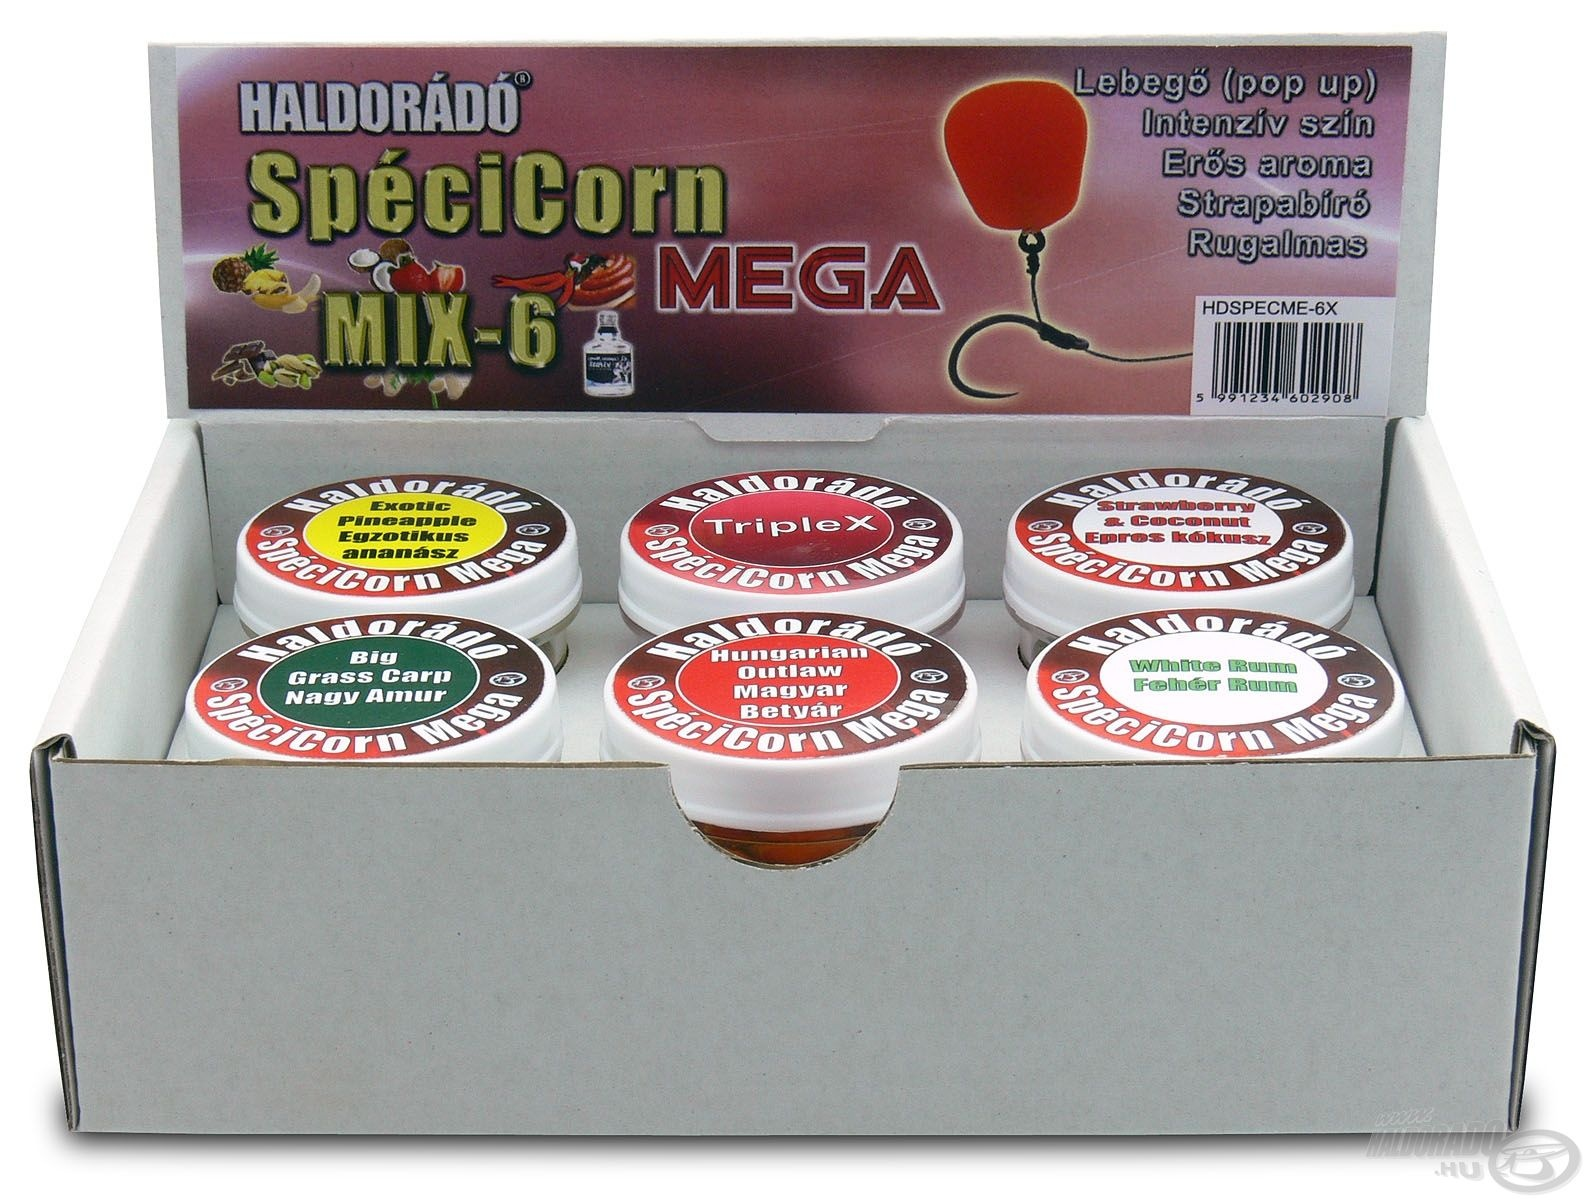 HALDOR�D�, Sp�ciCorn, Mega, -, MIX-6 6530, helyett, 5490Ft